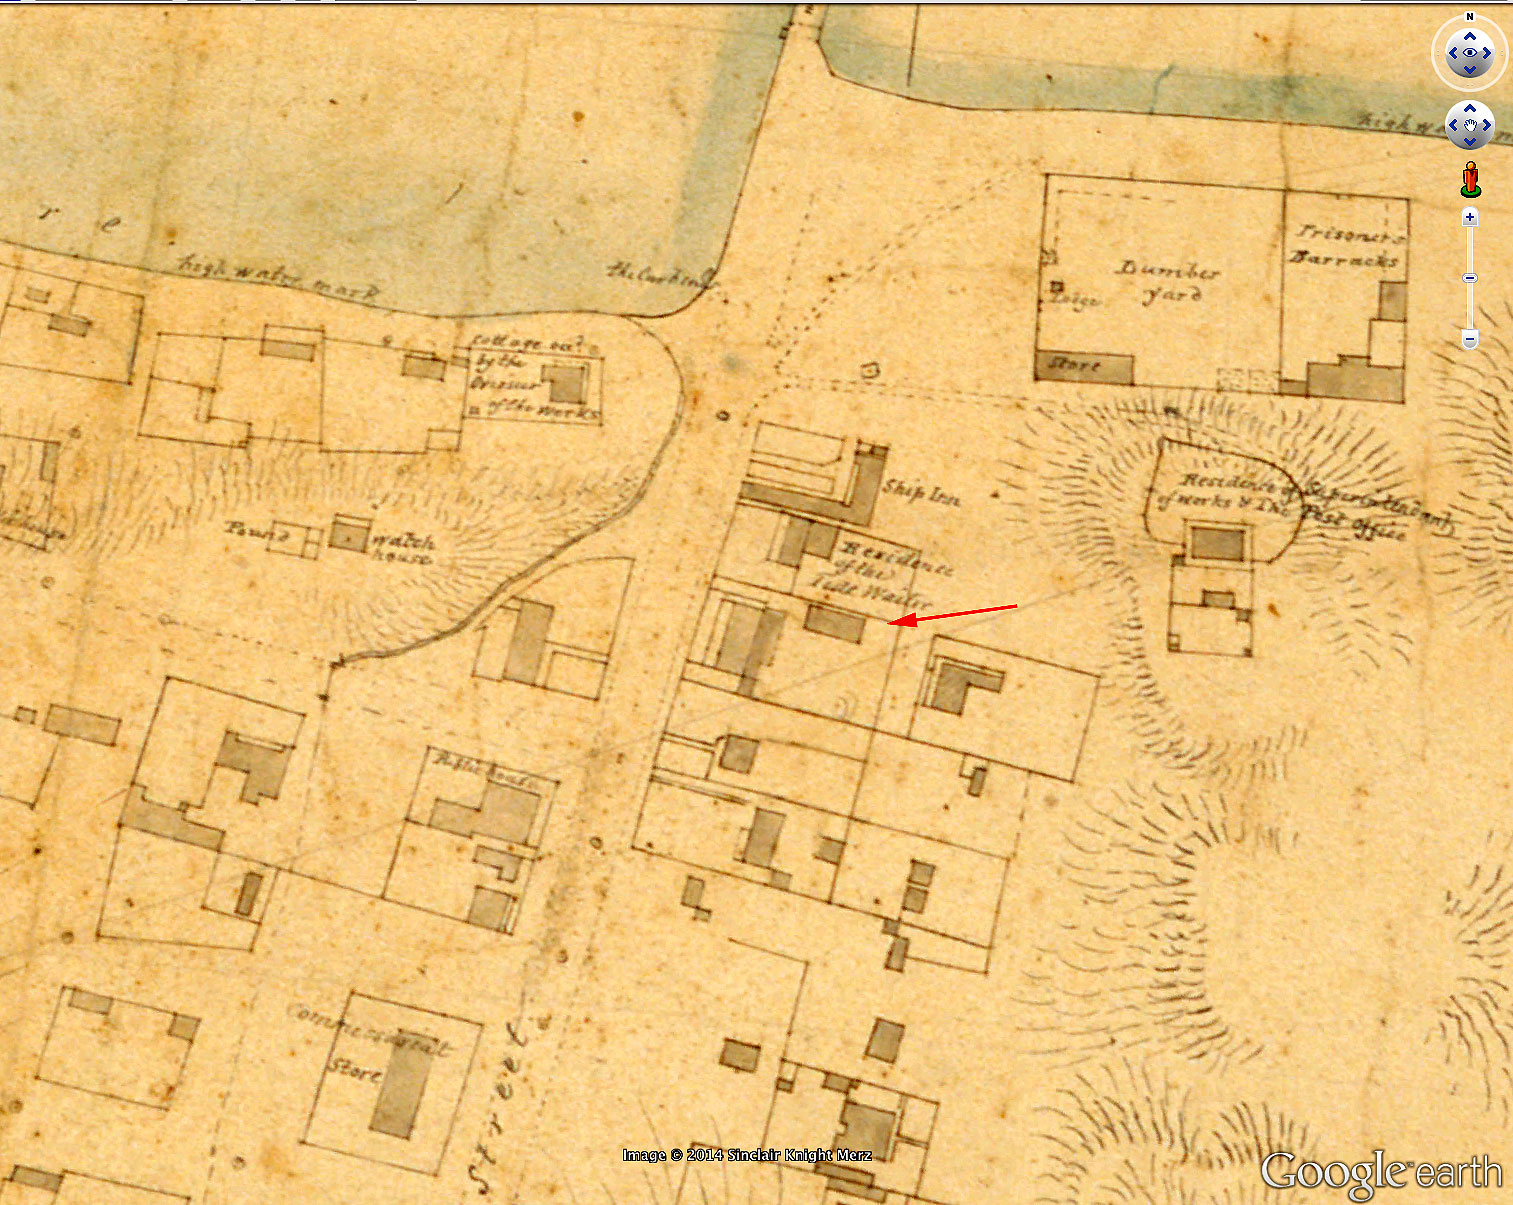 Rectangular mystery building on Armstrong's 1830 plan.